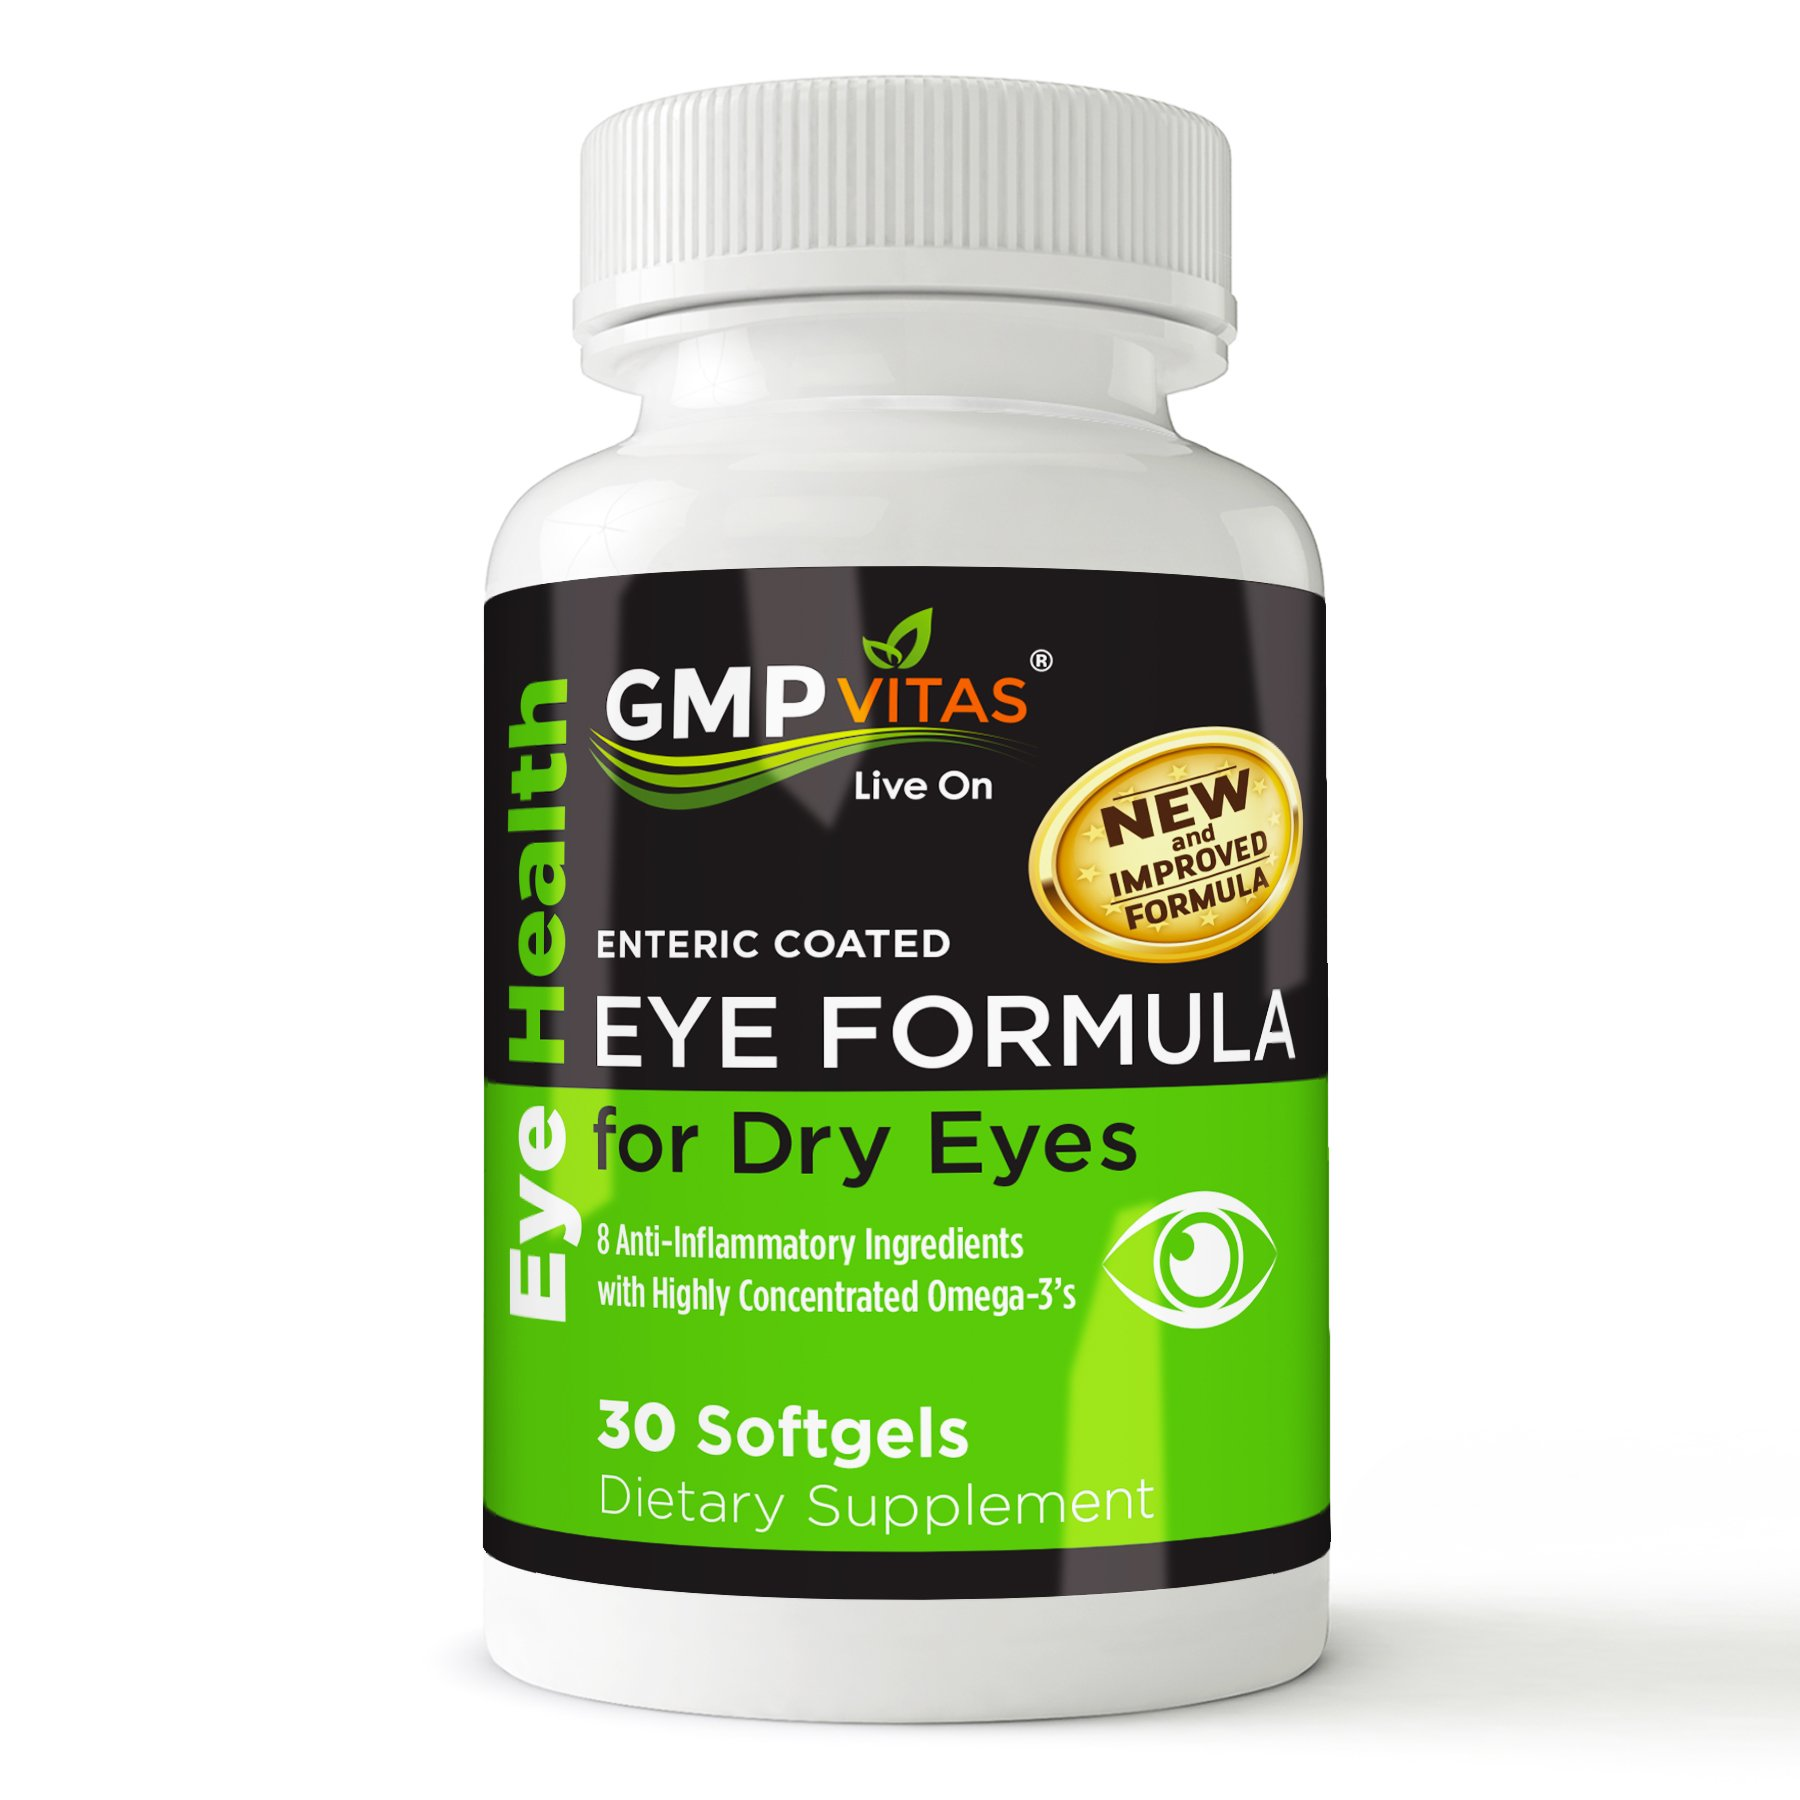 GMPVitas Enteric Coated Eye Formula- High Potency Omega-3 Supplement with Lutein, Astaxanthin Hyaluronic Acid, Vitamin C and E (3) by GMP Vitas (Image #3)